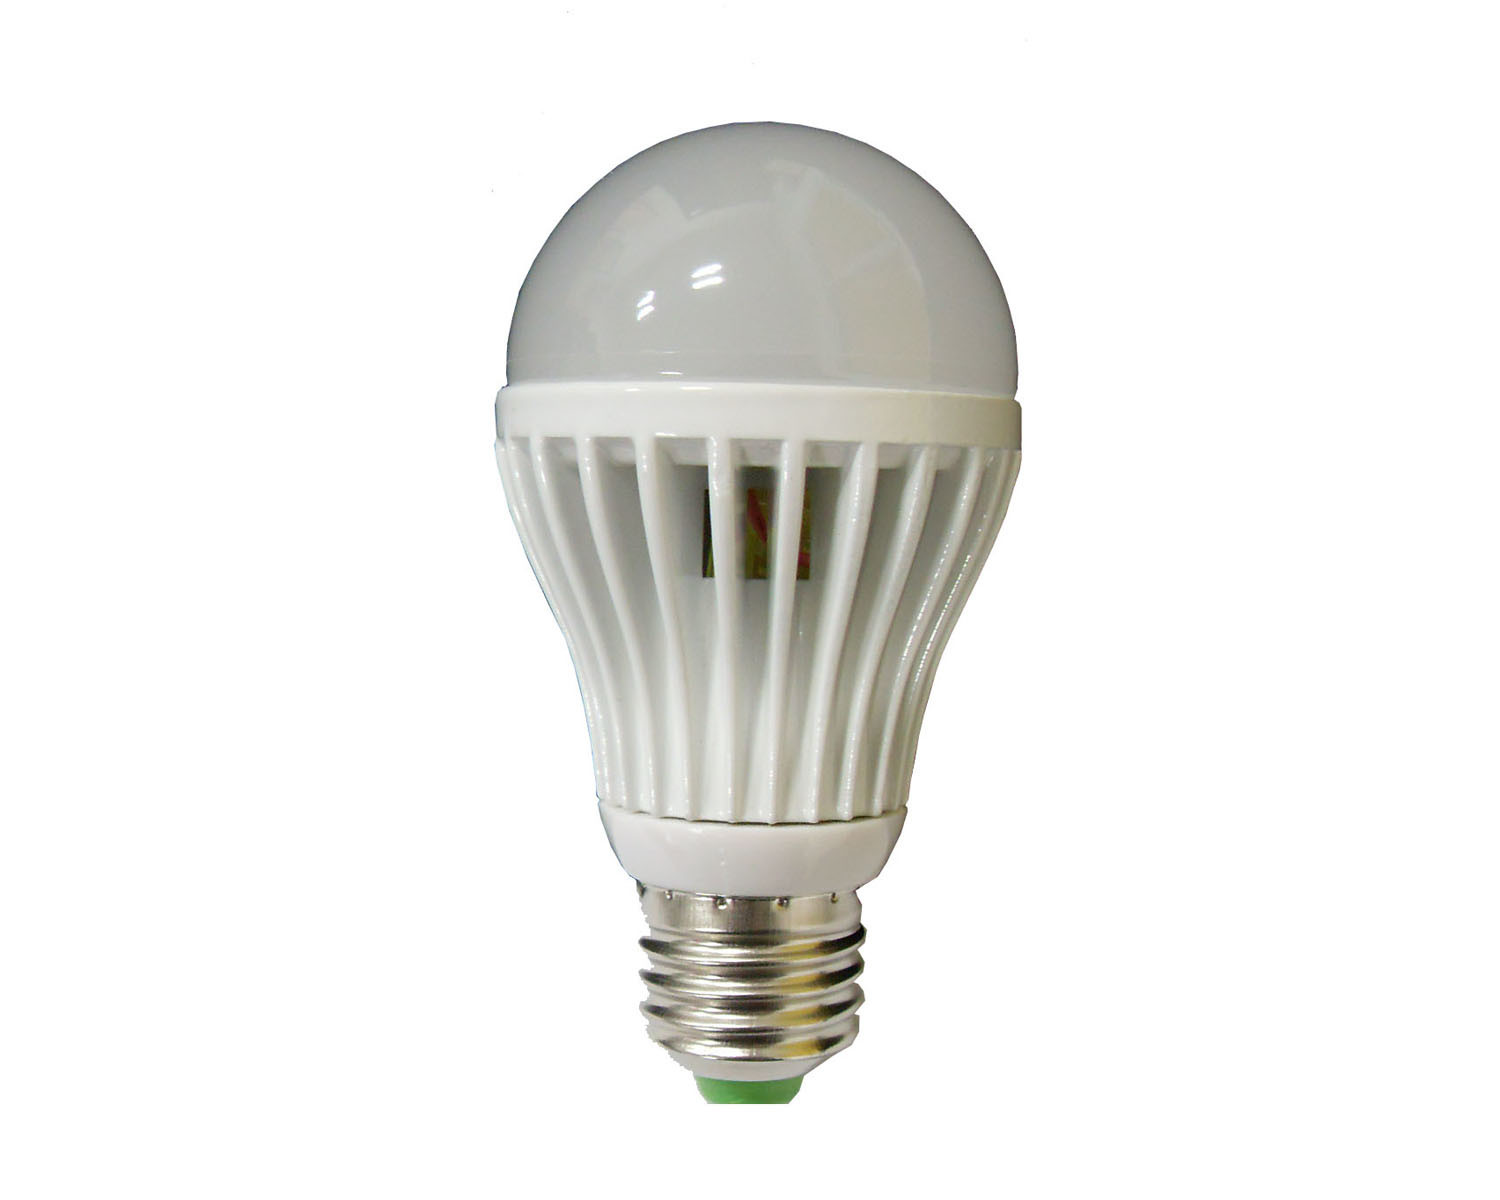 China led bulb light 9w 800lm china led bulbs lamp led bulb light Led light bulb cost